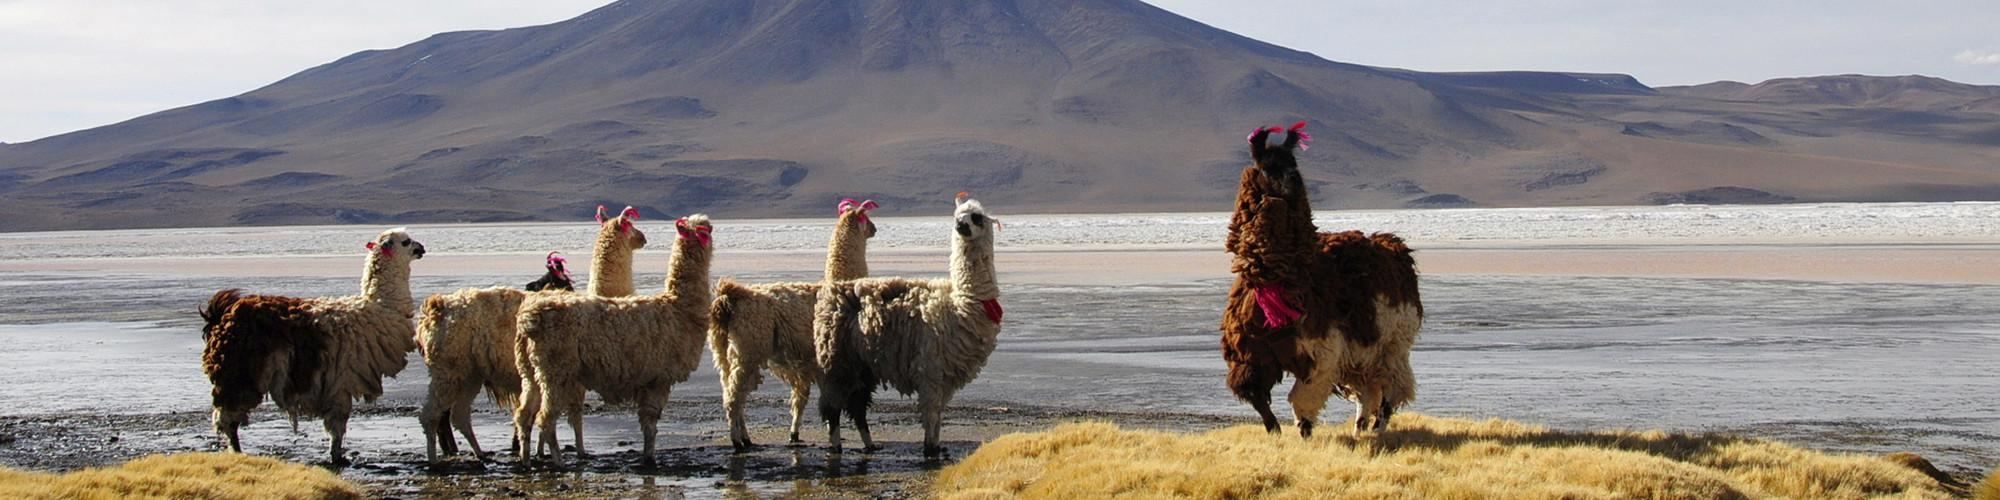 Bolivia in February 2020 Tours & Trips